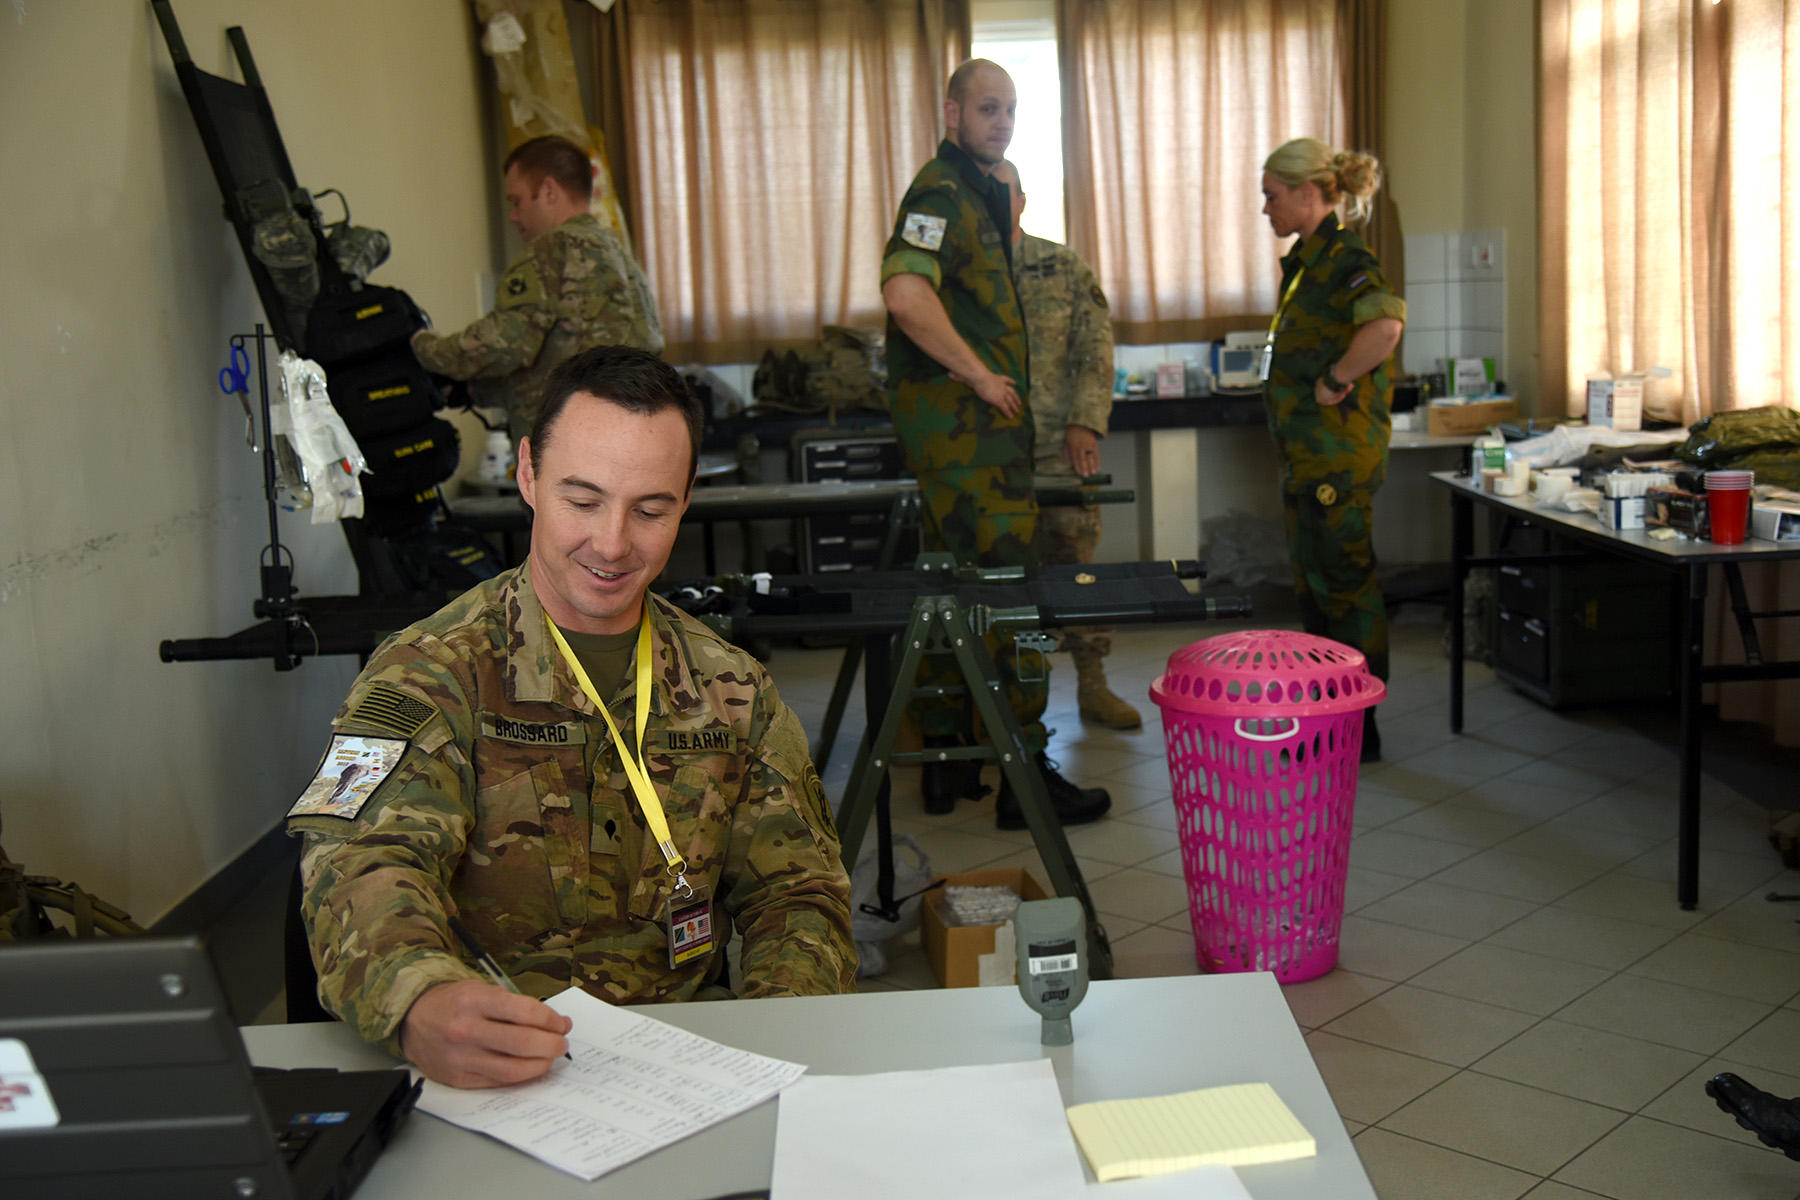 DAR ES SALAAM, Tanzania - U.S. Army Spc. Ron Brossard, Eastern Accord 2016 medical support team medic, writes notes on the patient check in sheet at the Tanzanian Peacekeeping Training Centre, July 15, 2016, in Dar es Salaam, Tanzania. The Dutch, Ugandan and U.S. medical team supports approximately 200 personnel for the annual, combined, joint military exercise that brings together nine partner nations to practice and demonstrate proficiency in conducting peacekeeping operations. (U.S. Air Force photo by Staff Sgt. Tiffany DeNault)